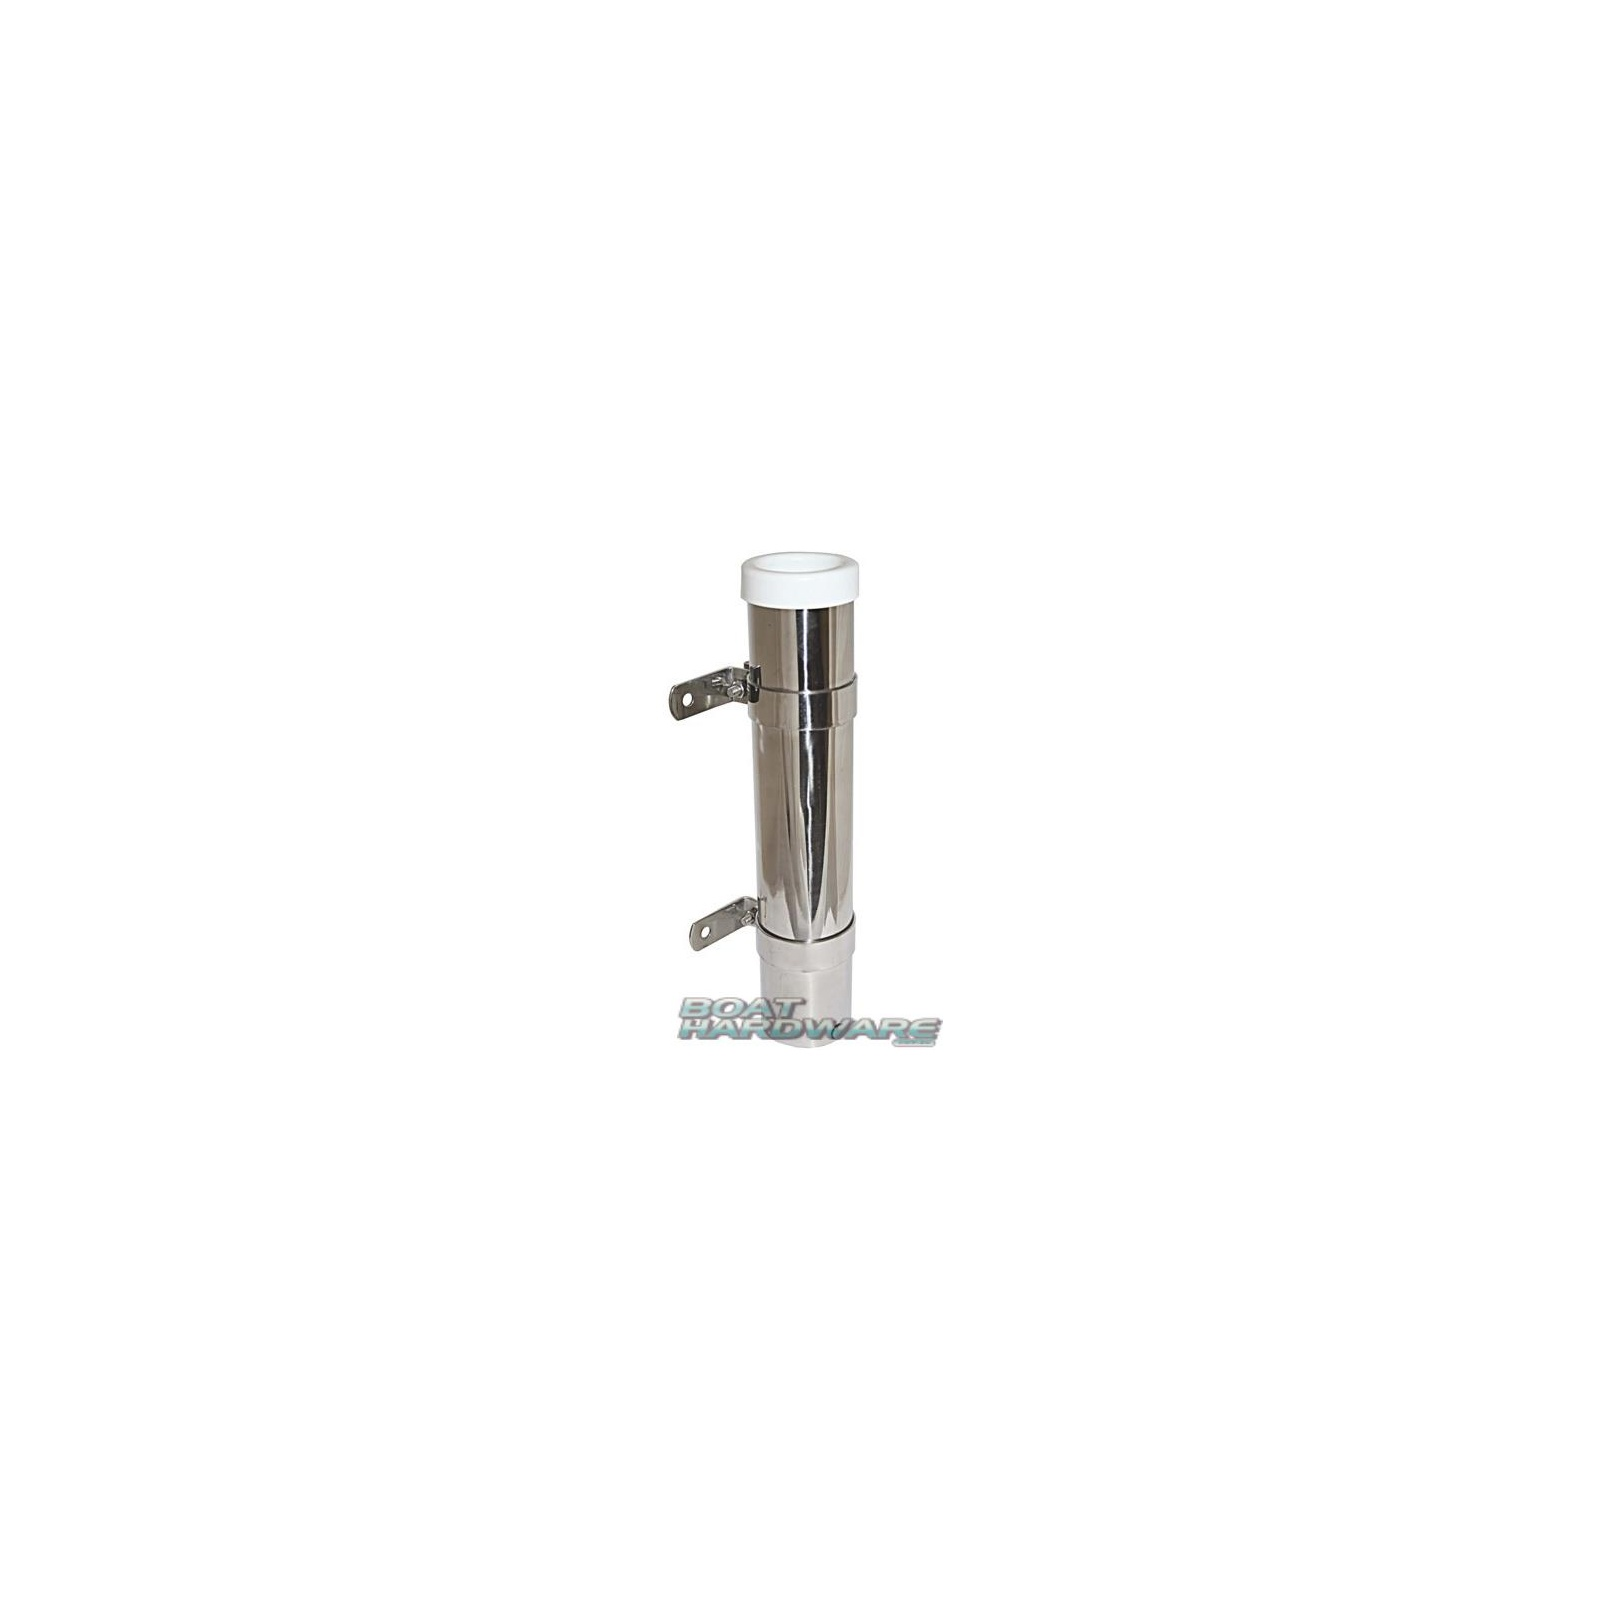 Rod Holder Side Mount - Stainless Steel